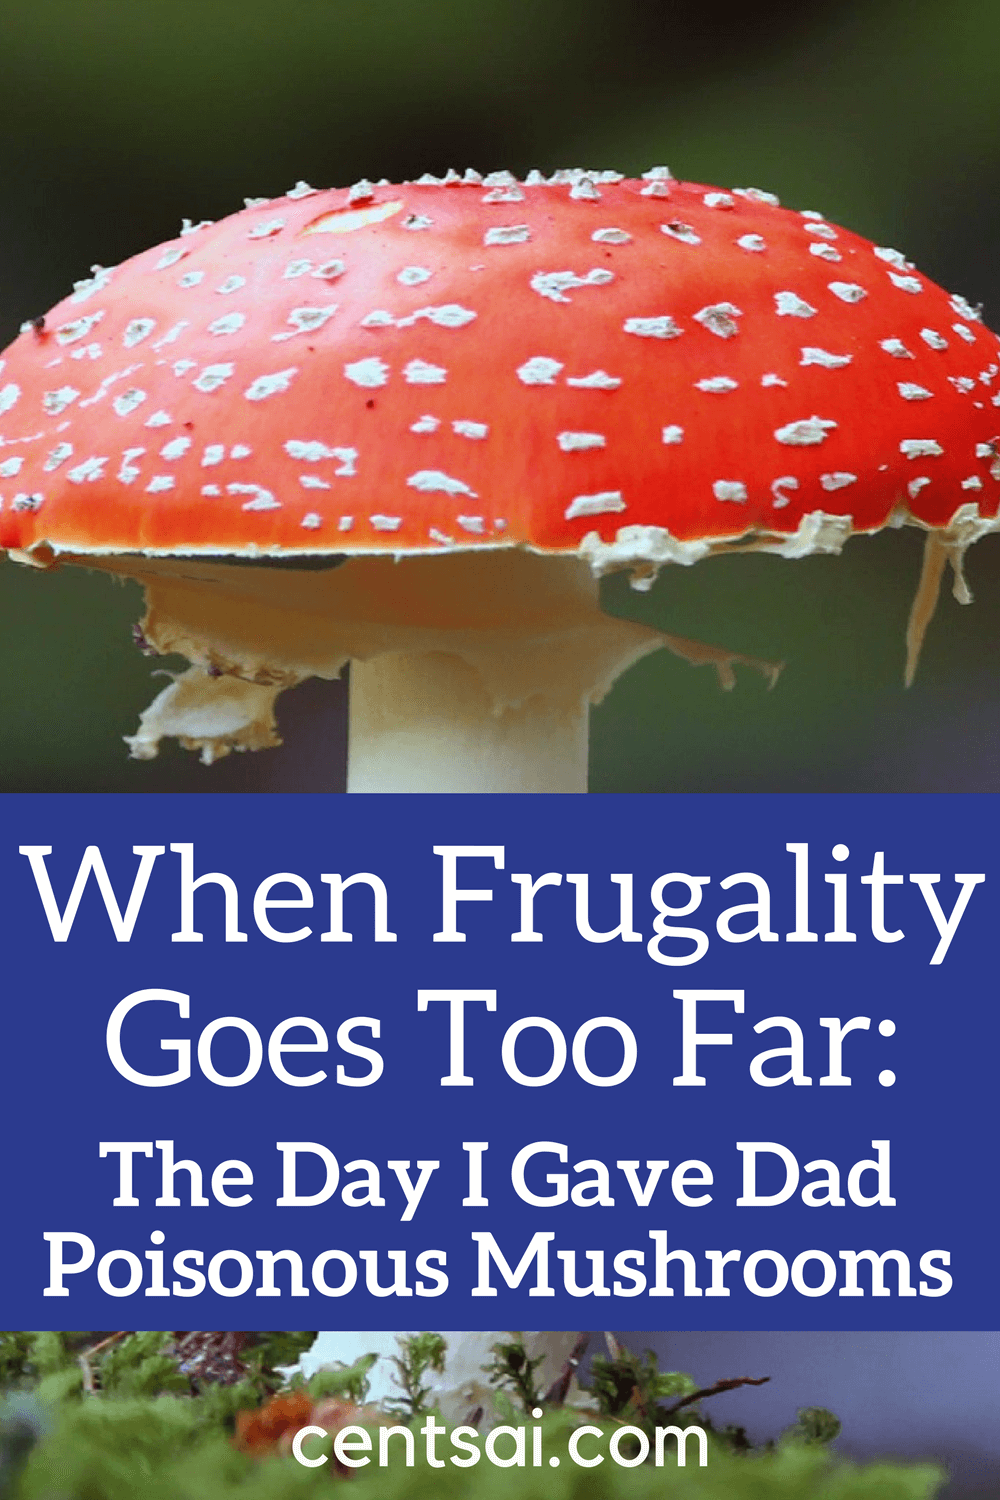 When Frugality Goes Too Far: The Day I Gave Dad Poisonous Mushrooms. It's good to be careful with money. But when frugality goes too far, you may end up almost killing your parents trying to save money!